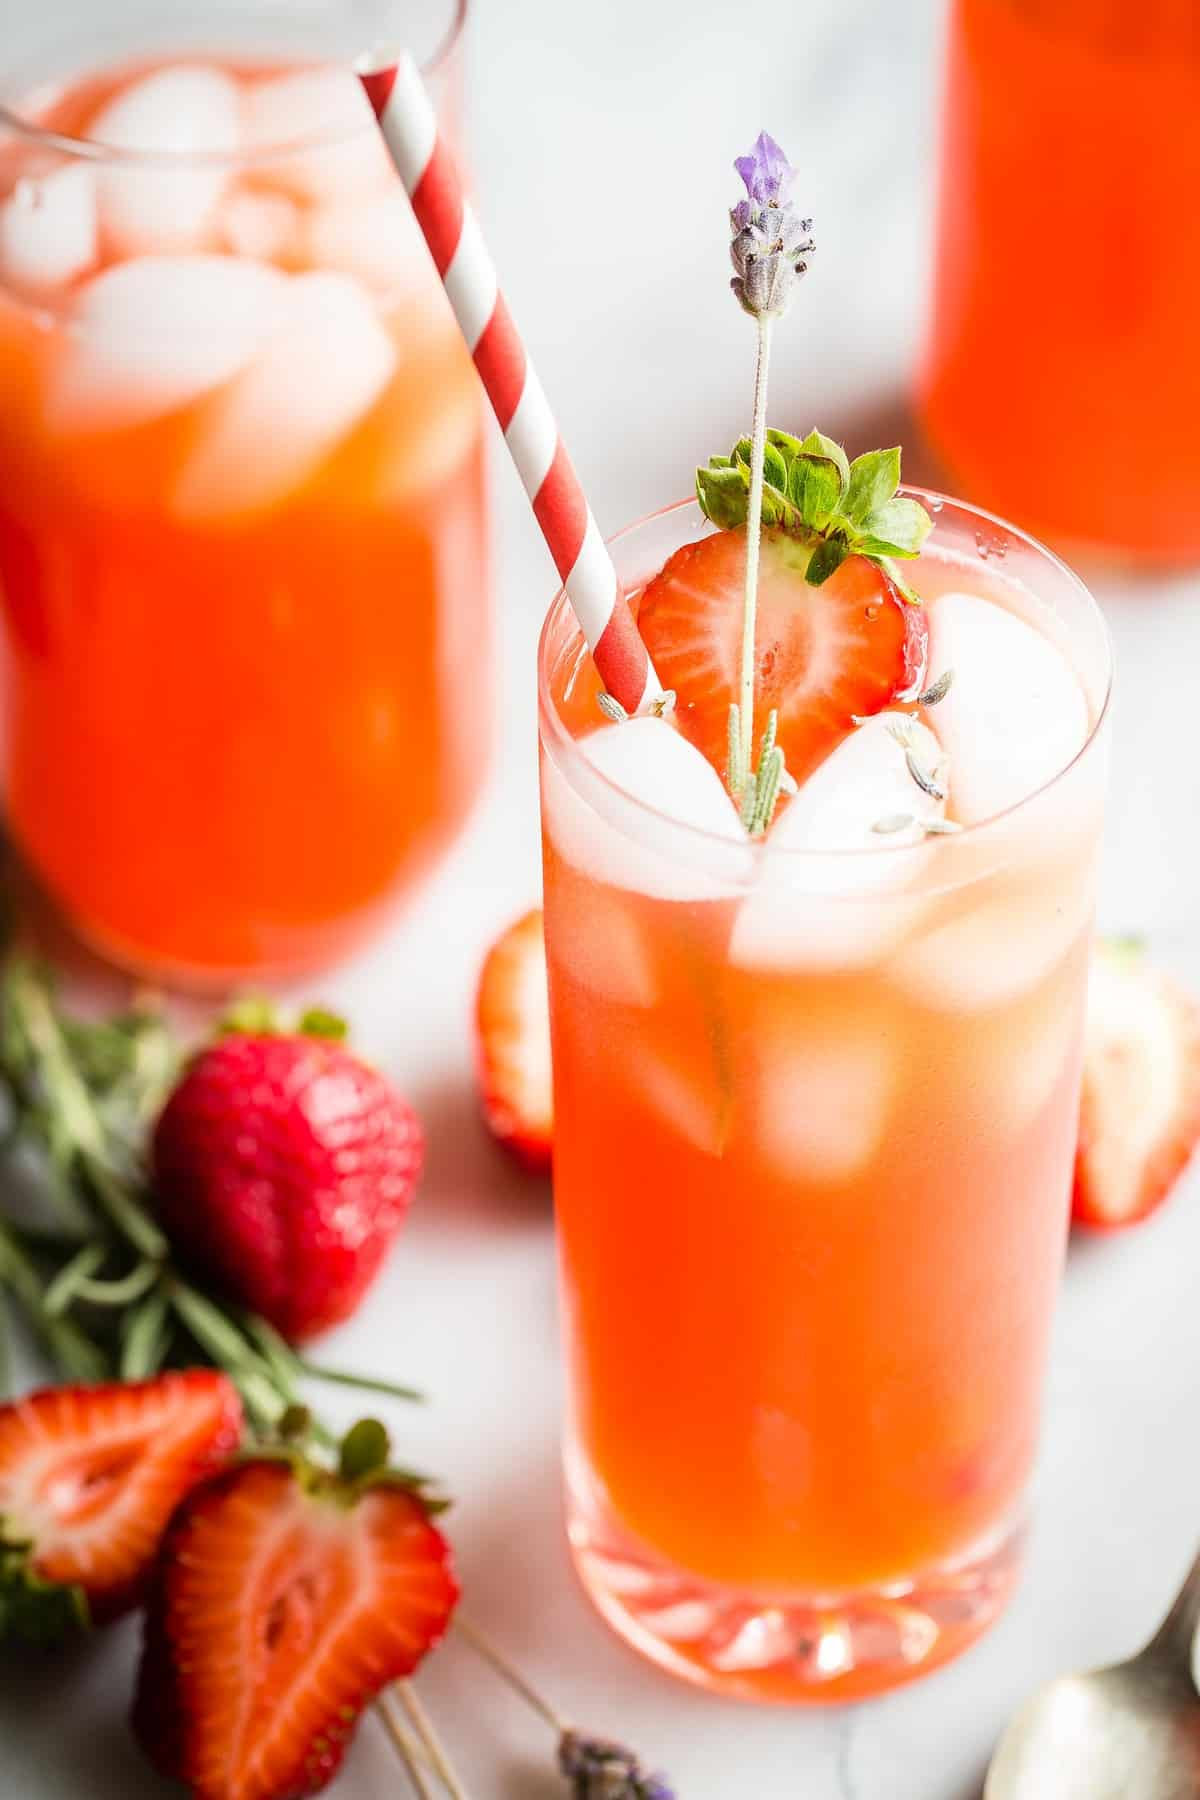 This homemade fresh Strawberry Lavender Lemonade is mega-refreshing and still perfect for the last weeks of summer! Make a giant pitcher of it and keep it in the fridge ready to pour.